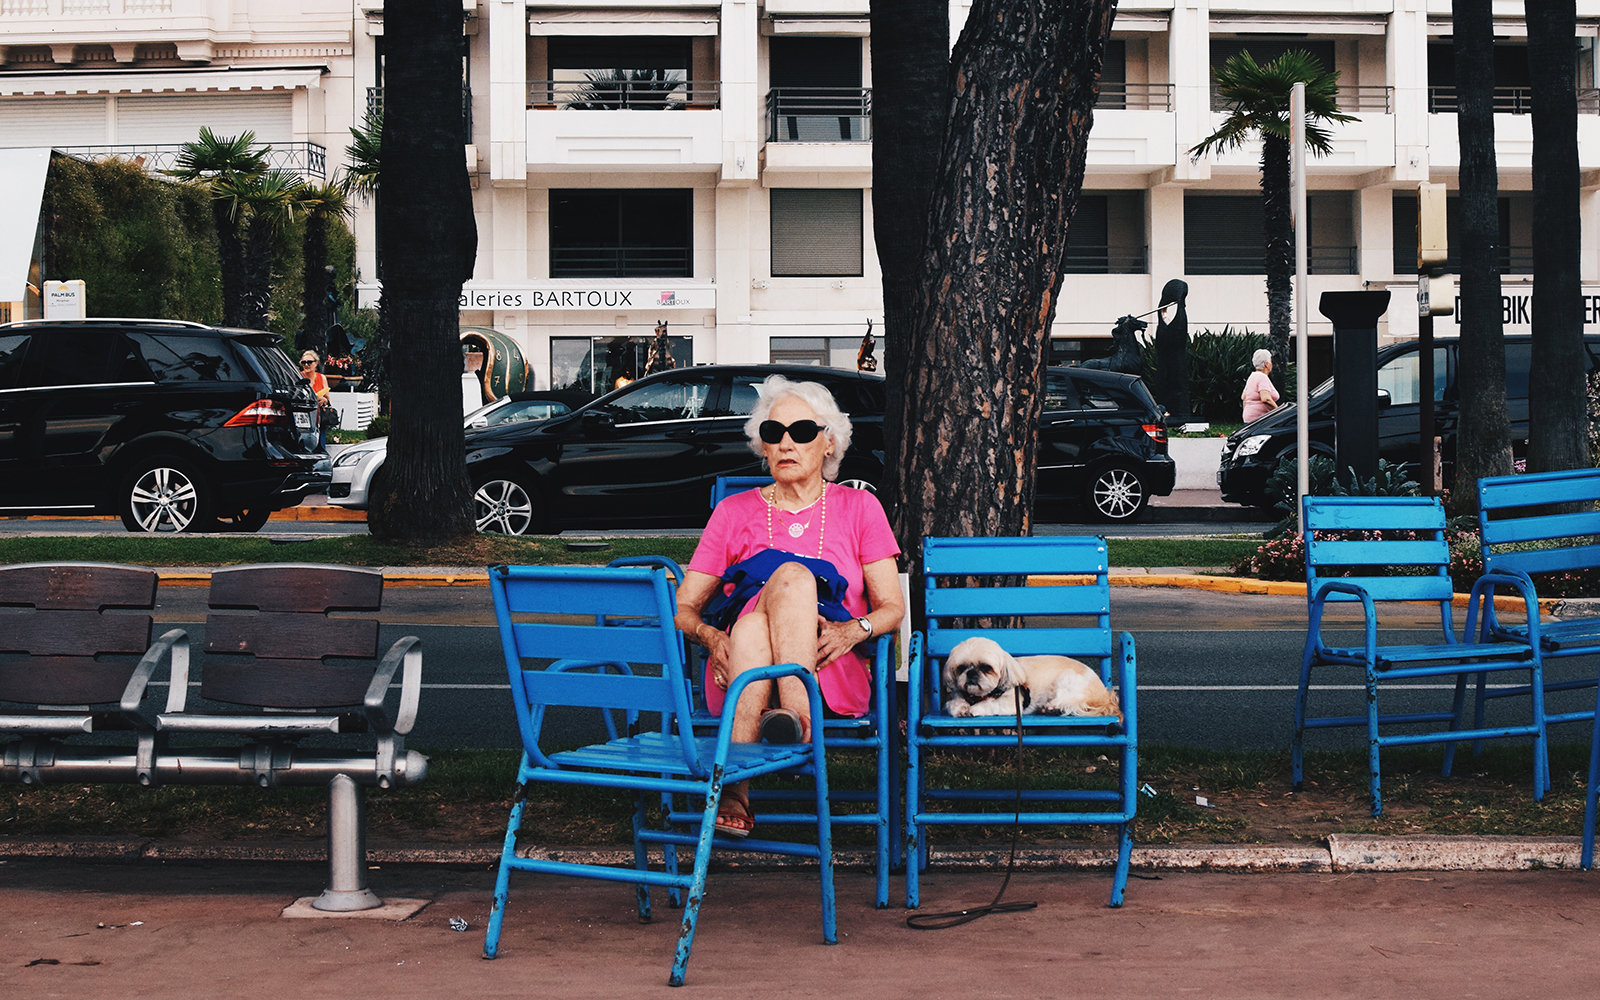 Taken in Cannes, France 2015. I took this photograph on Promenade de la Croisette, during my summer holiday. Whilst everyone is mostly new wealth, this woman stood out, as she is relatively modest in appearance, and accompanied by a dog, as well as being